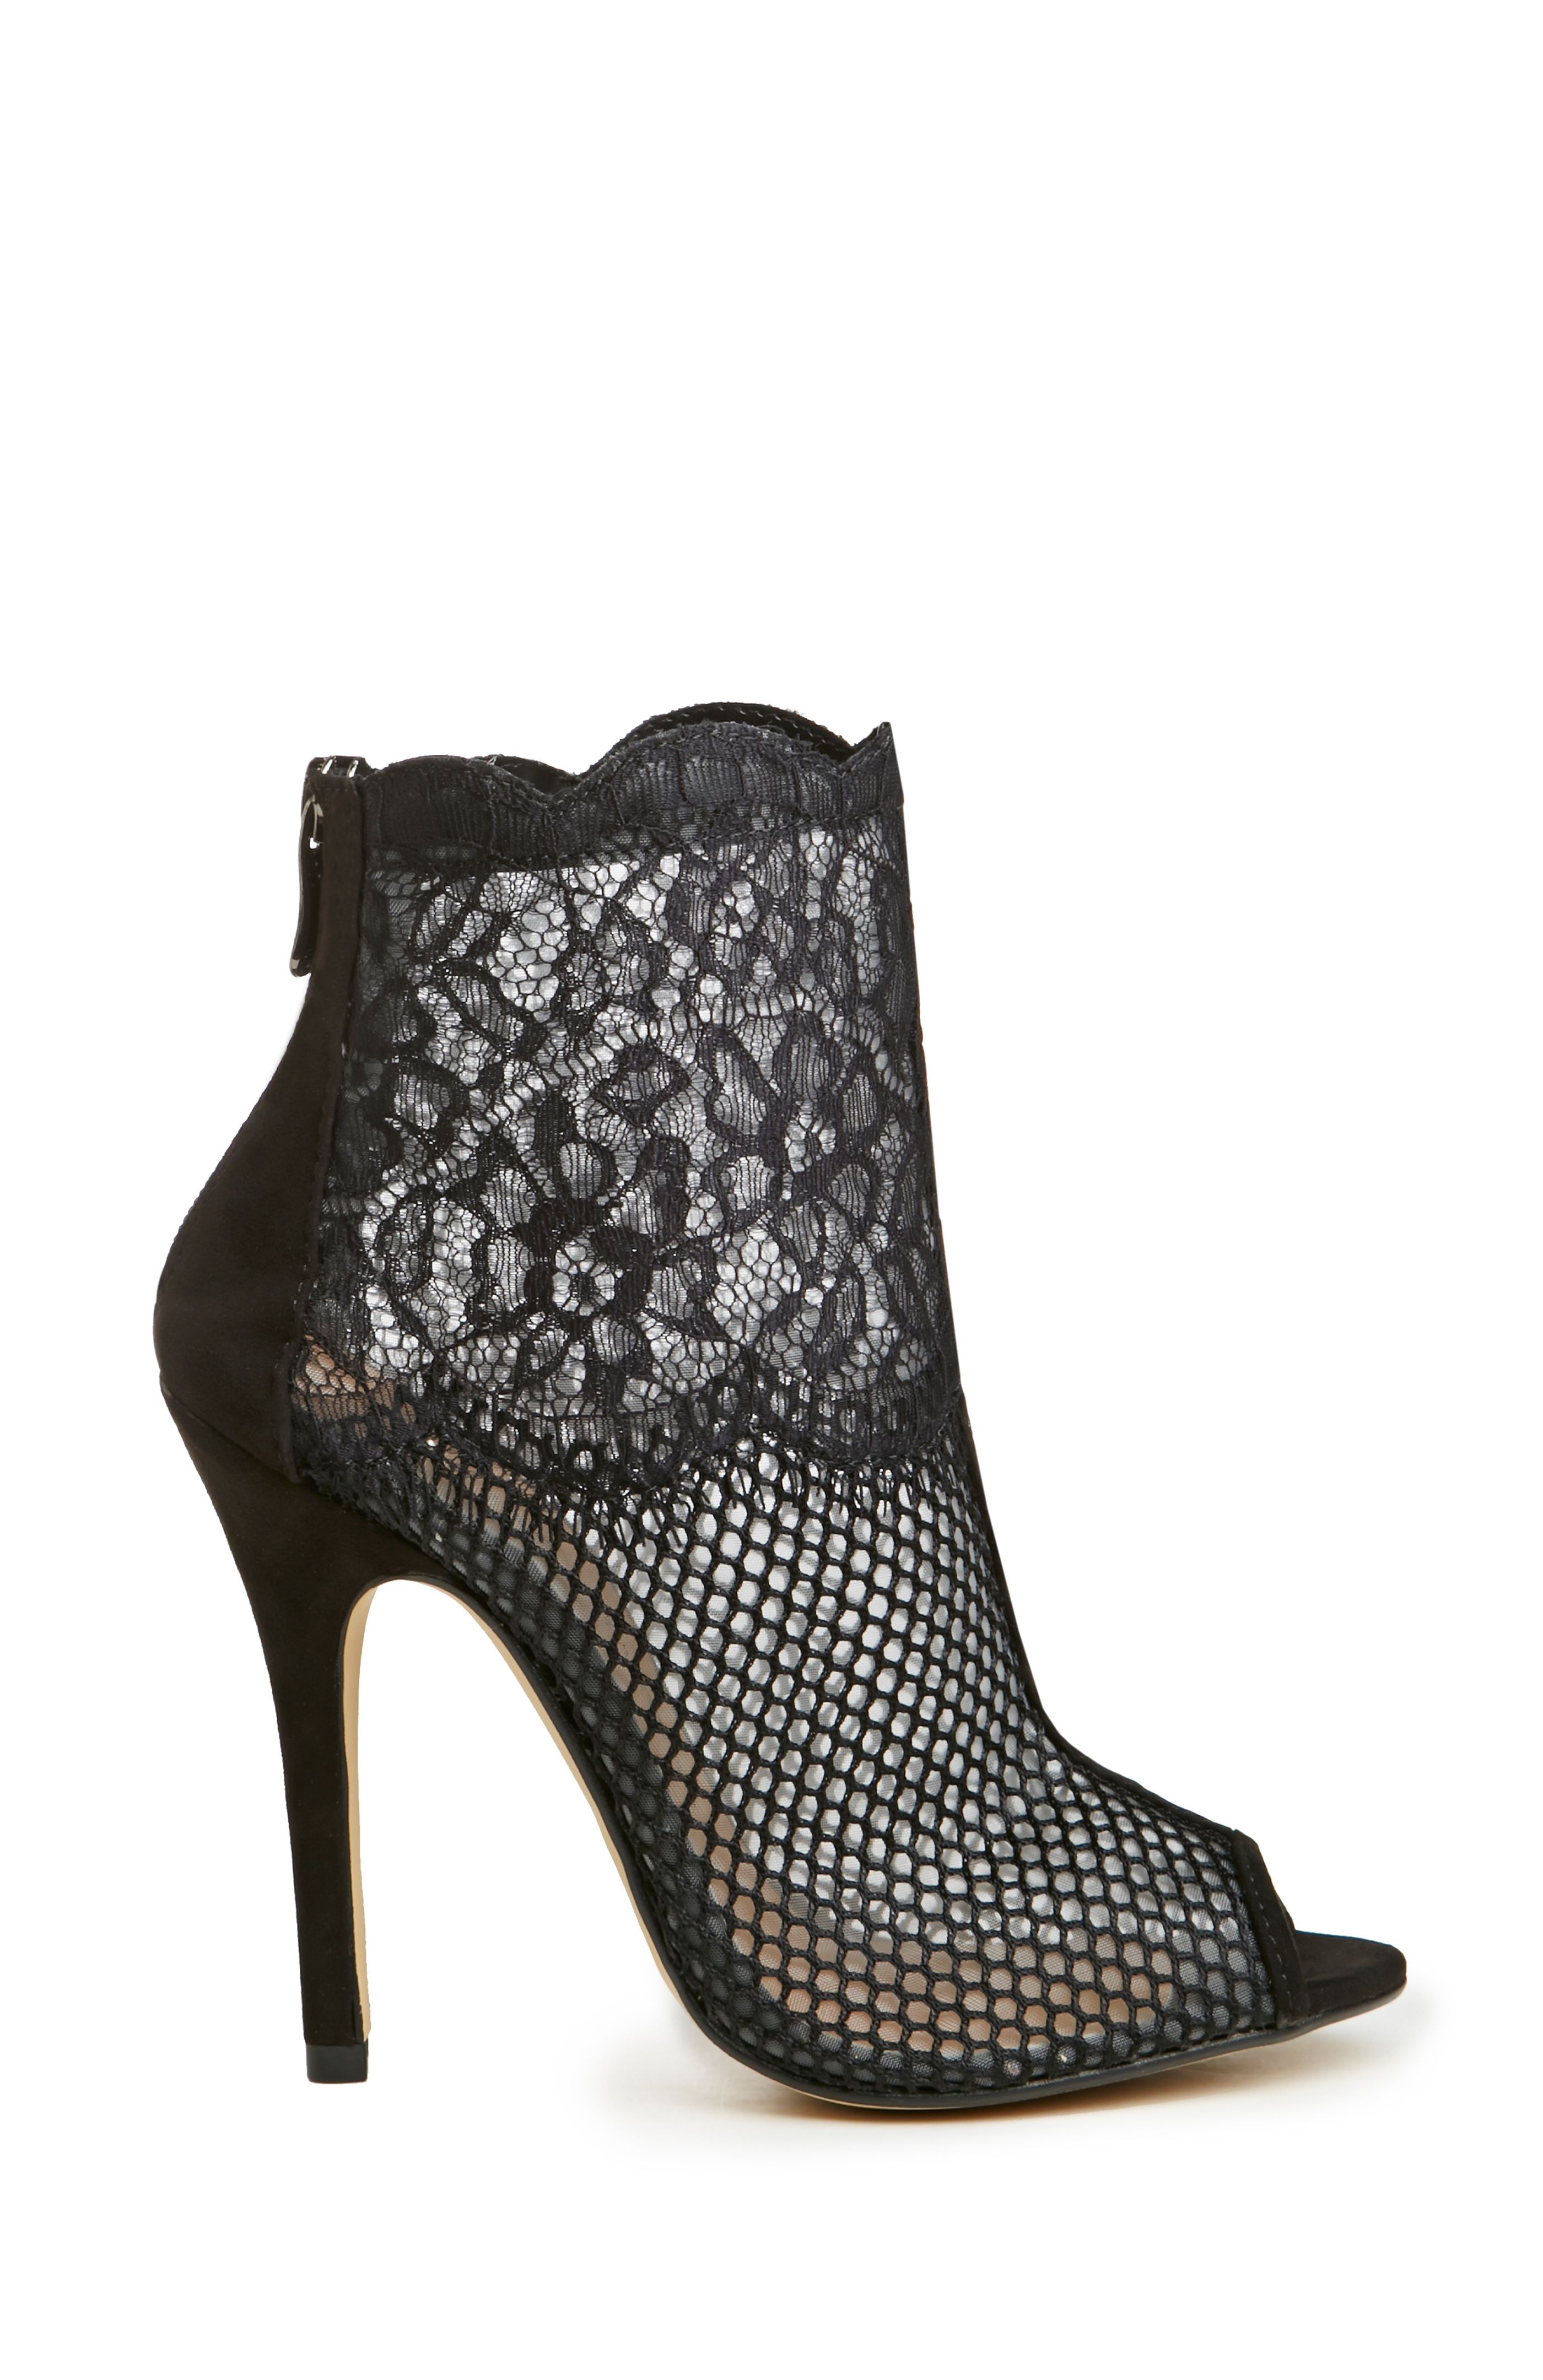 Dailylook: chinese laundry lace jeopardy heels in black